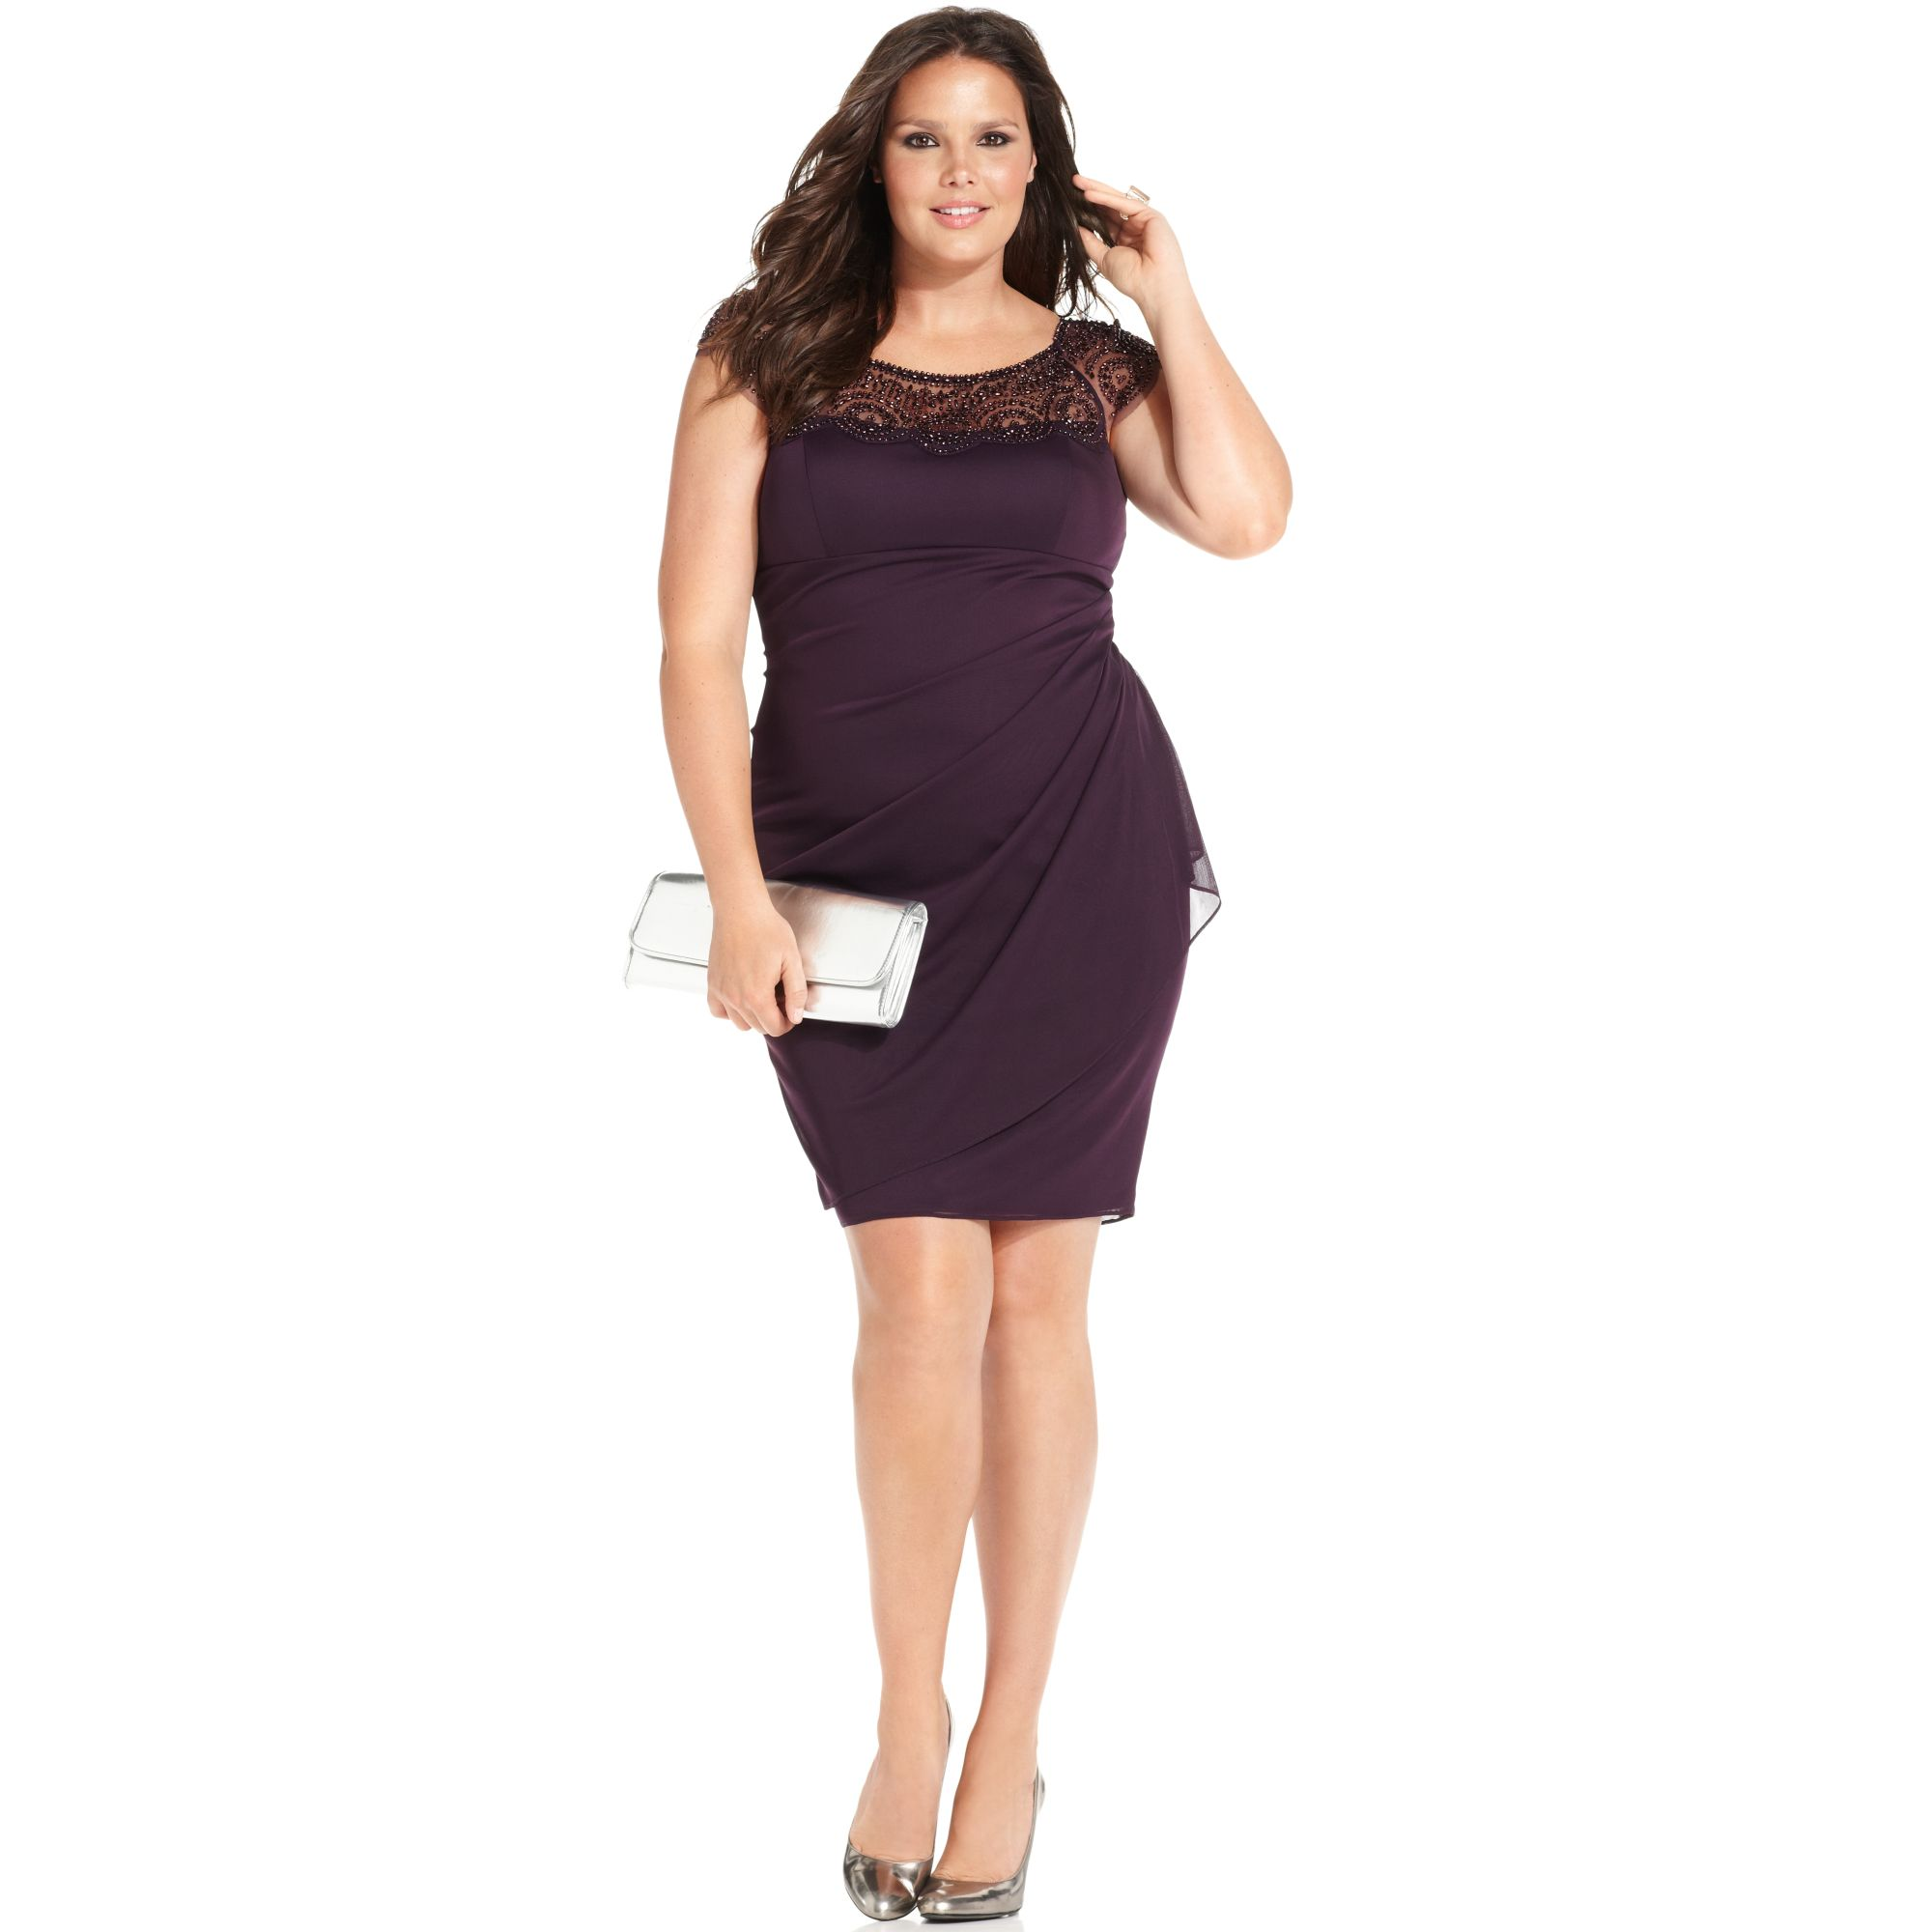 Xscape Xscape Plus Size Dress Capsleeve Beaded in Purple | Lyst